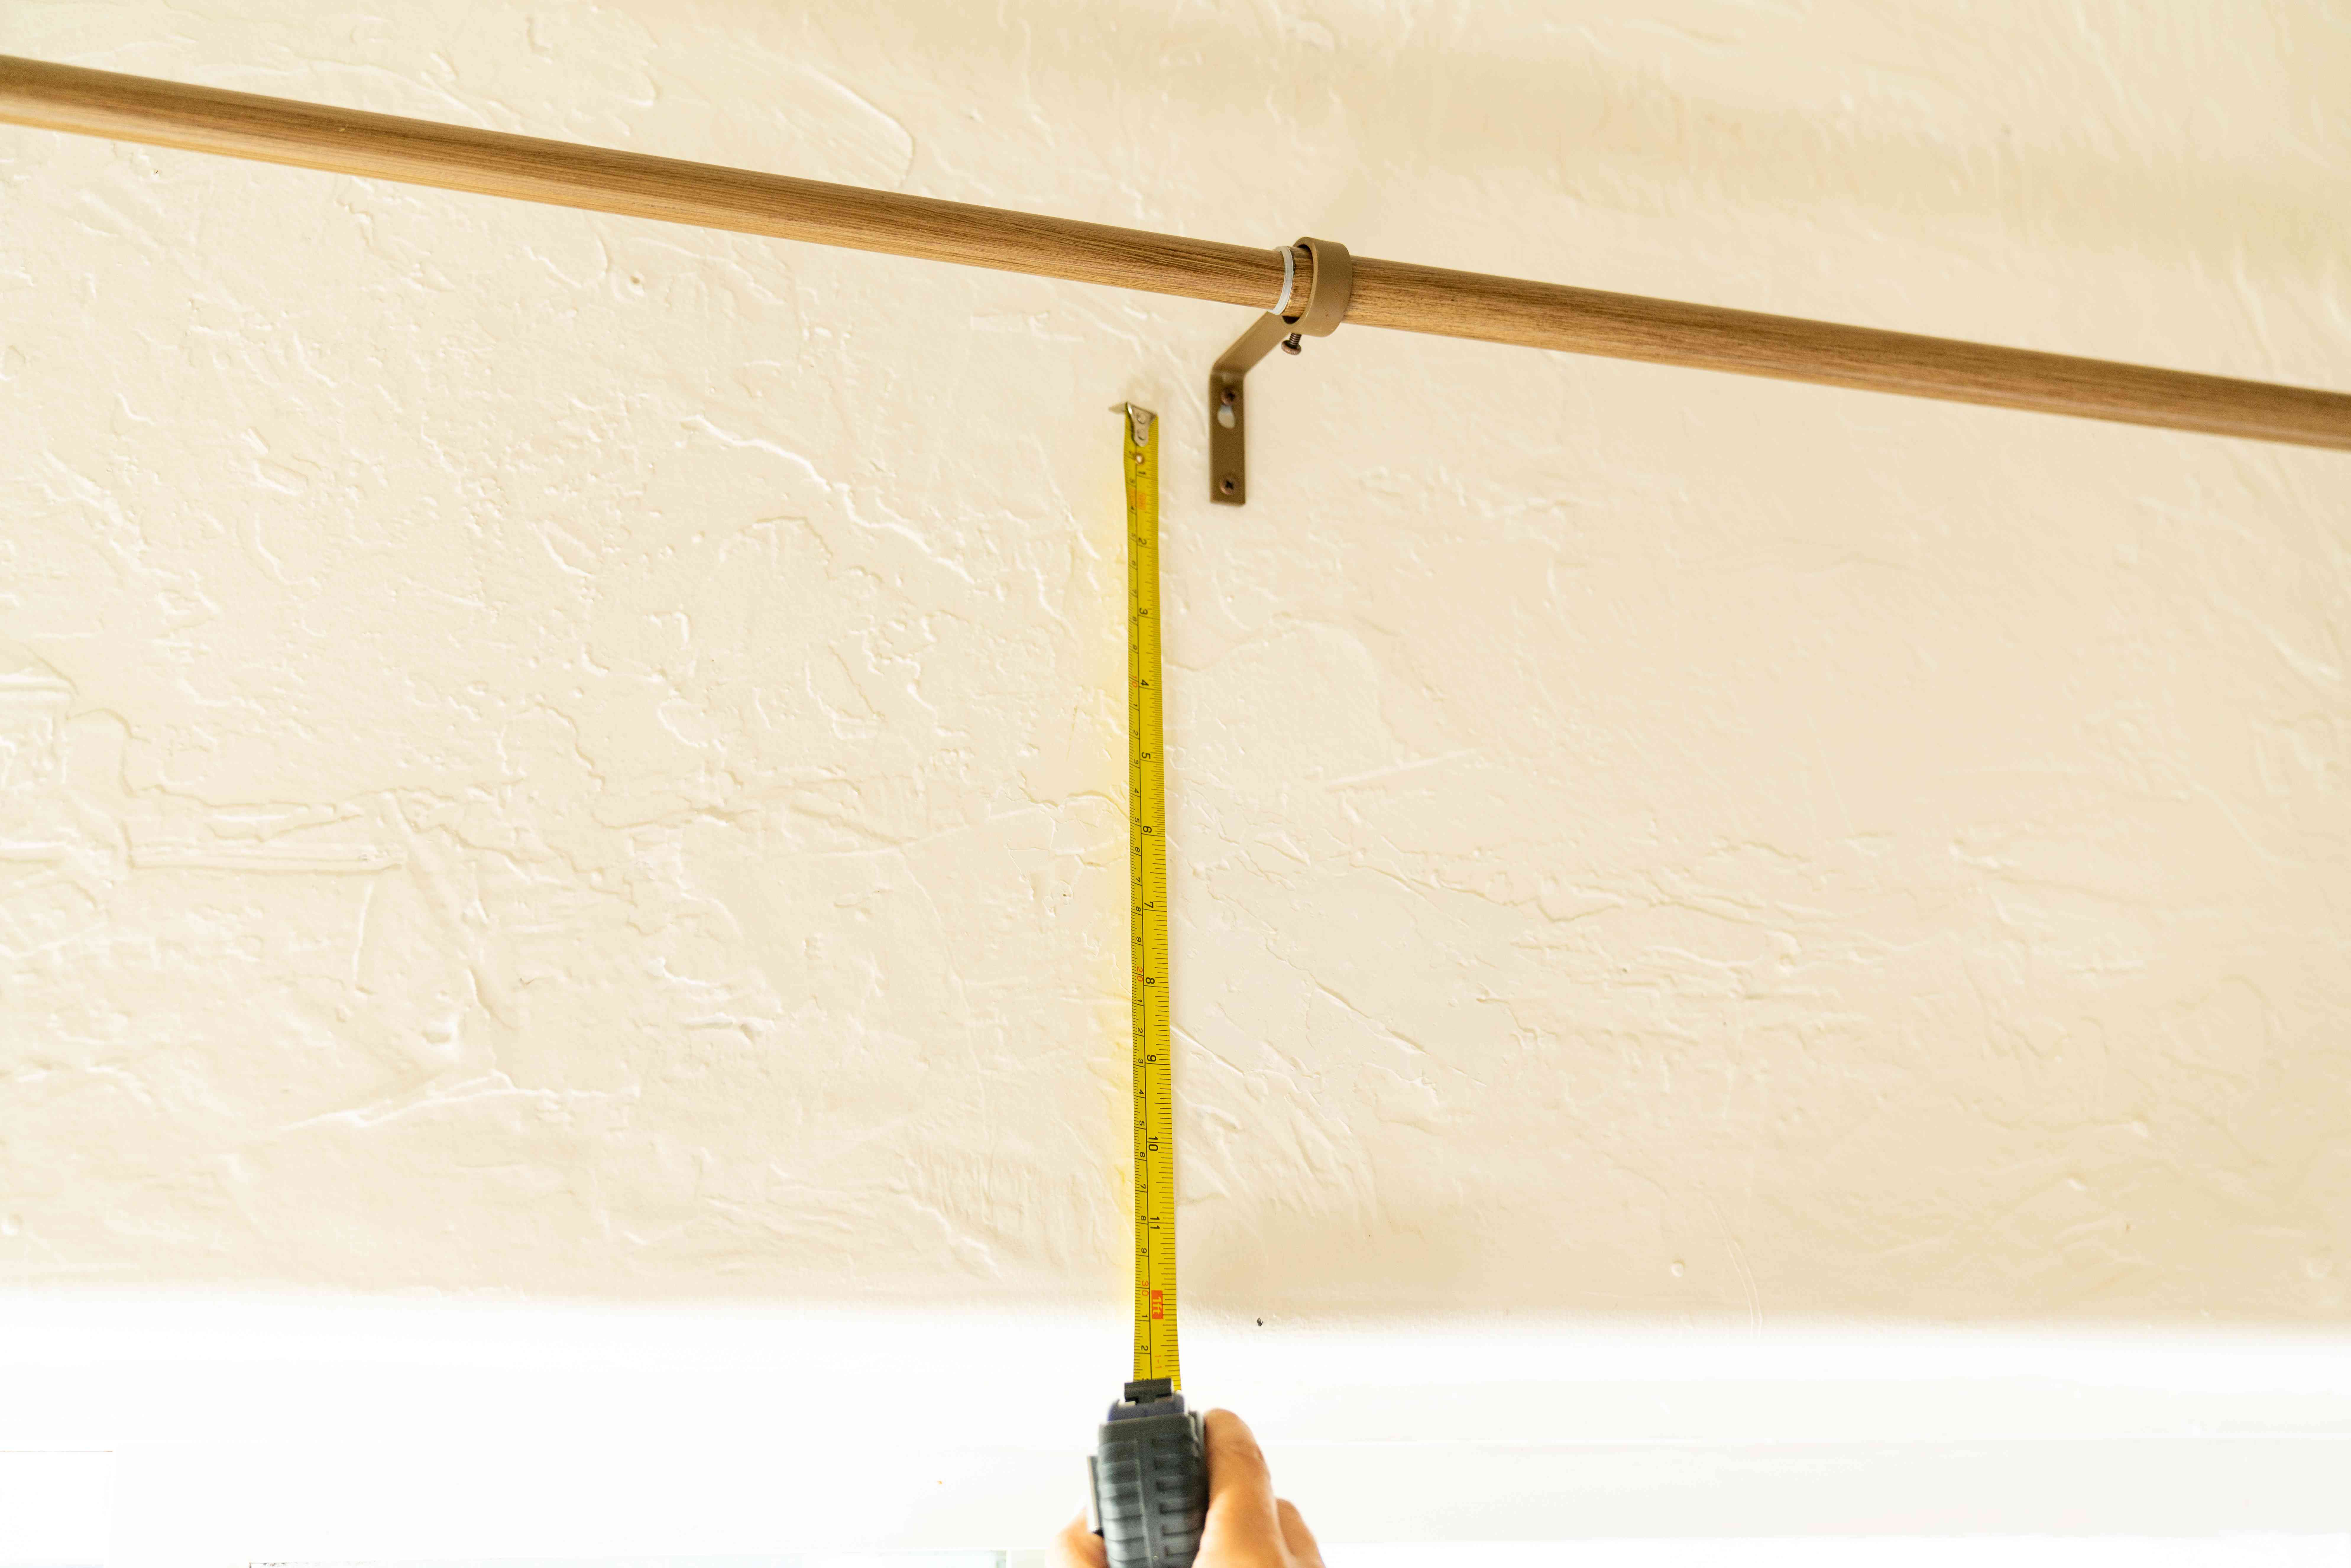 Curtain rod height measured above window with measuring tape